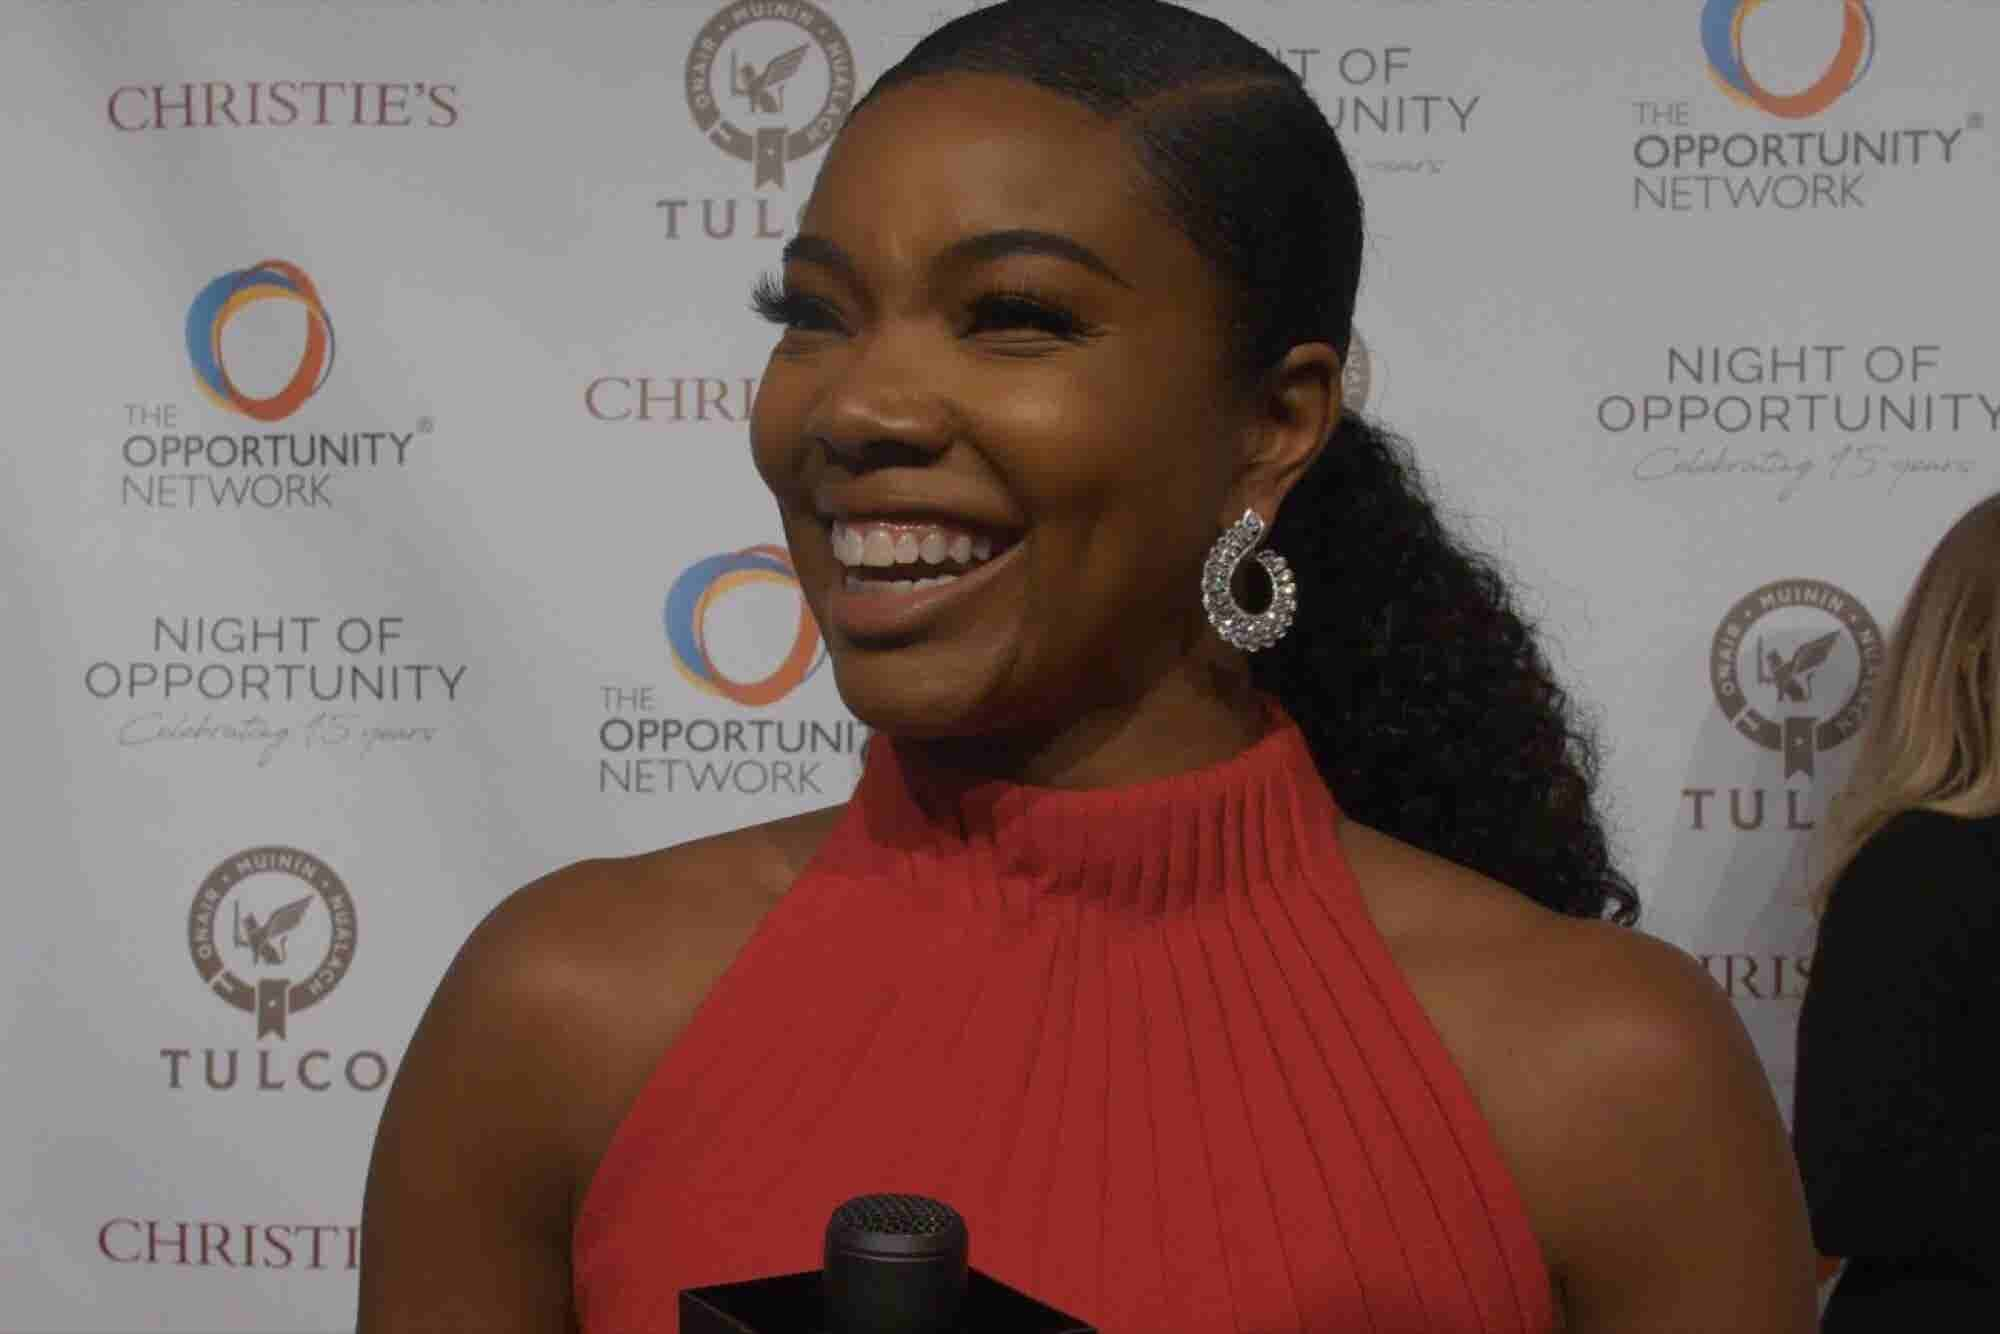 Gabrielle Union Gives an Impromptu Pep Talk You Won't Soon Forget